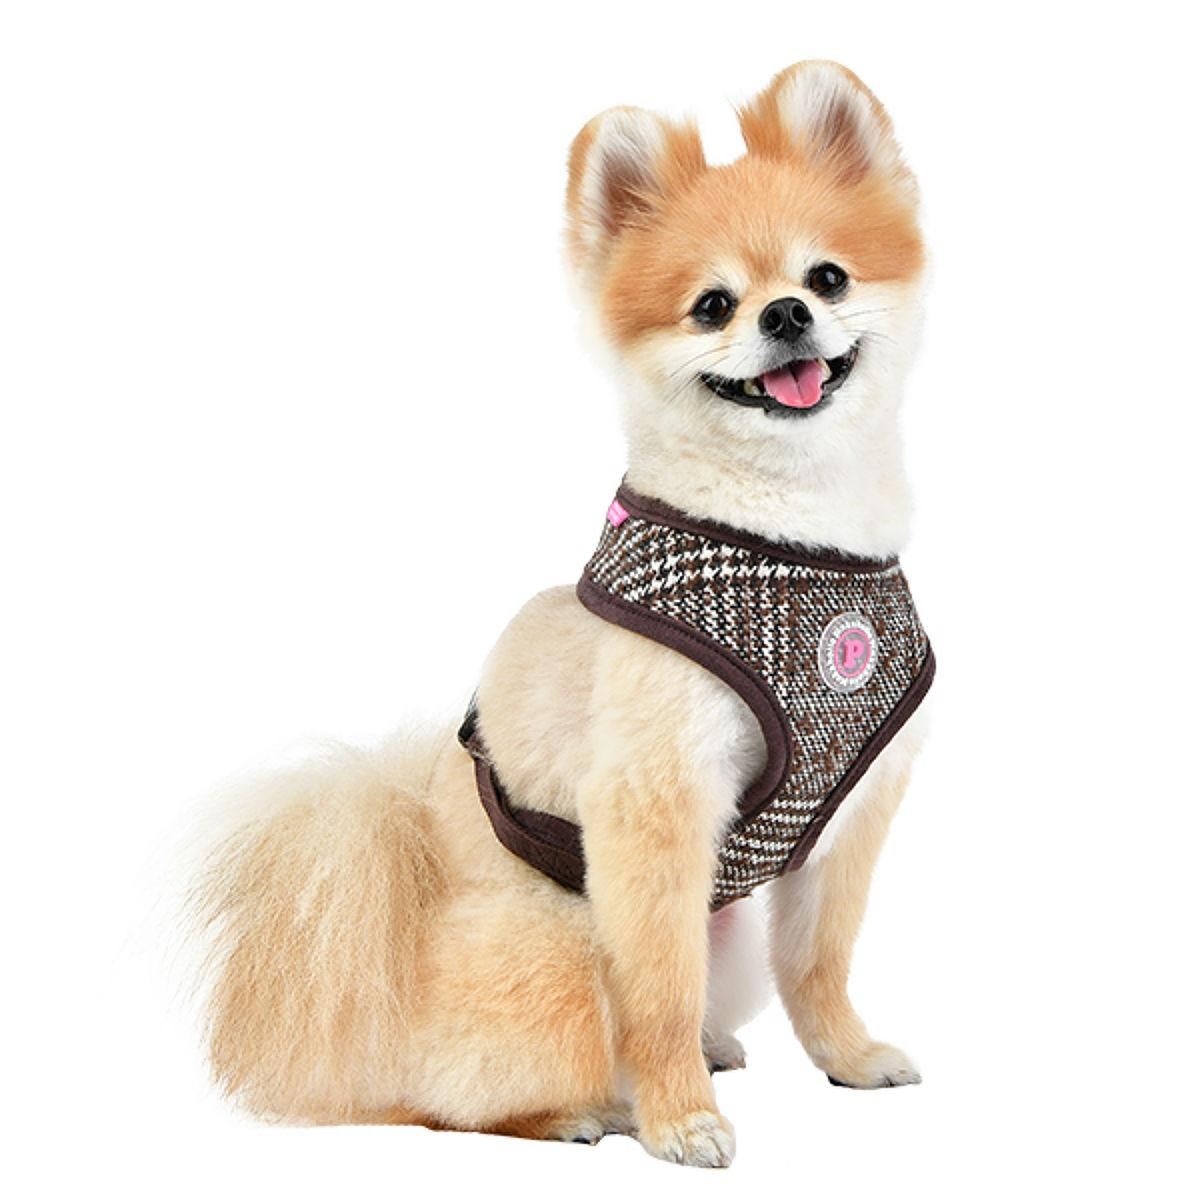 Da Vinci Basic Style Dog Harness By Pinkaholic - Brown